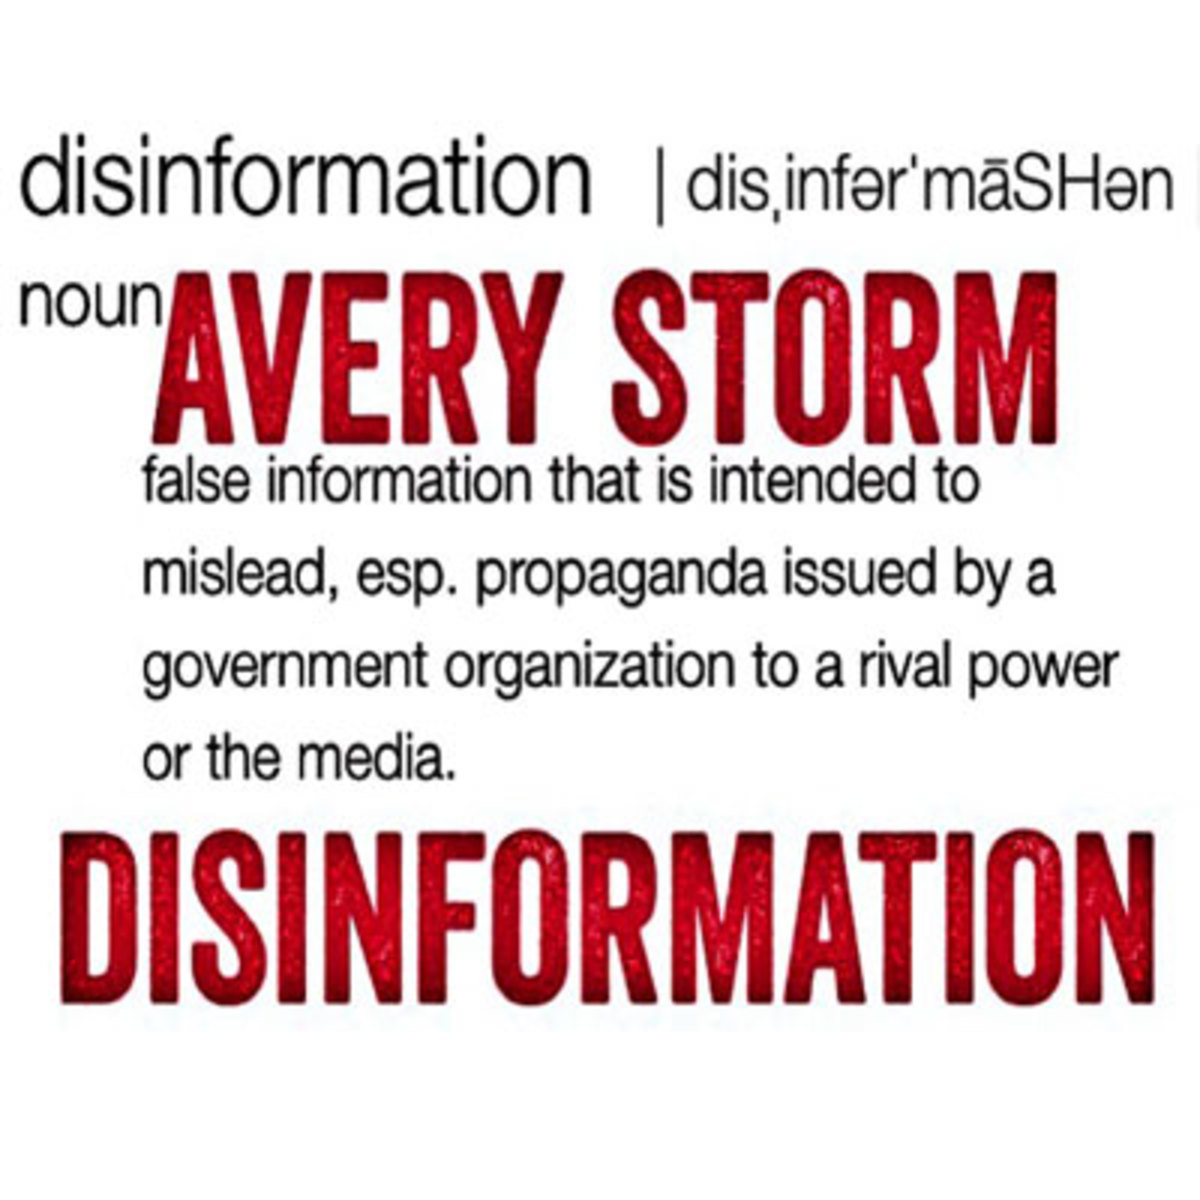 averystorm-disinformation.jpg